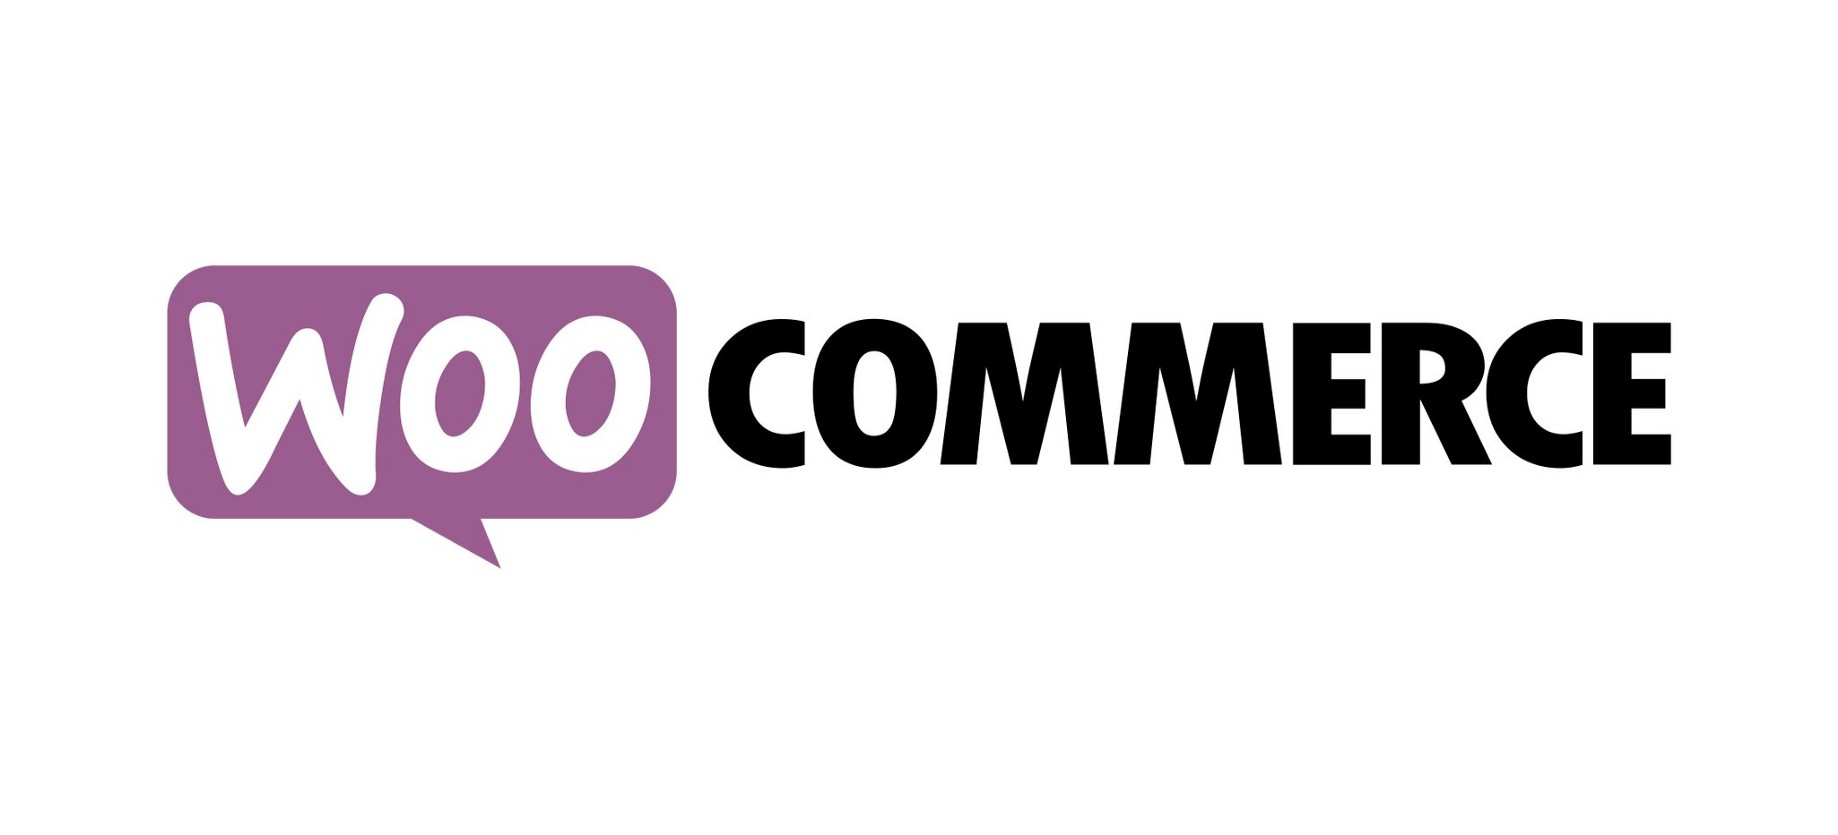 How to choose the best Woocommerce native app builder?